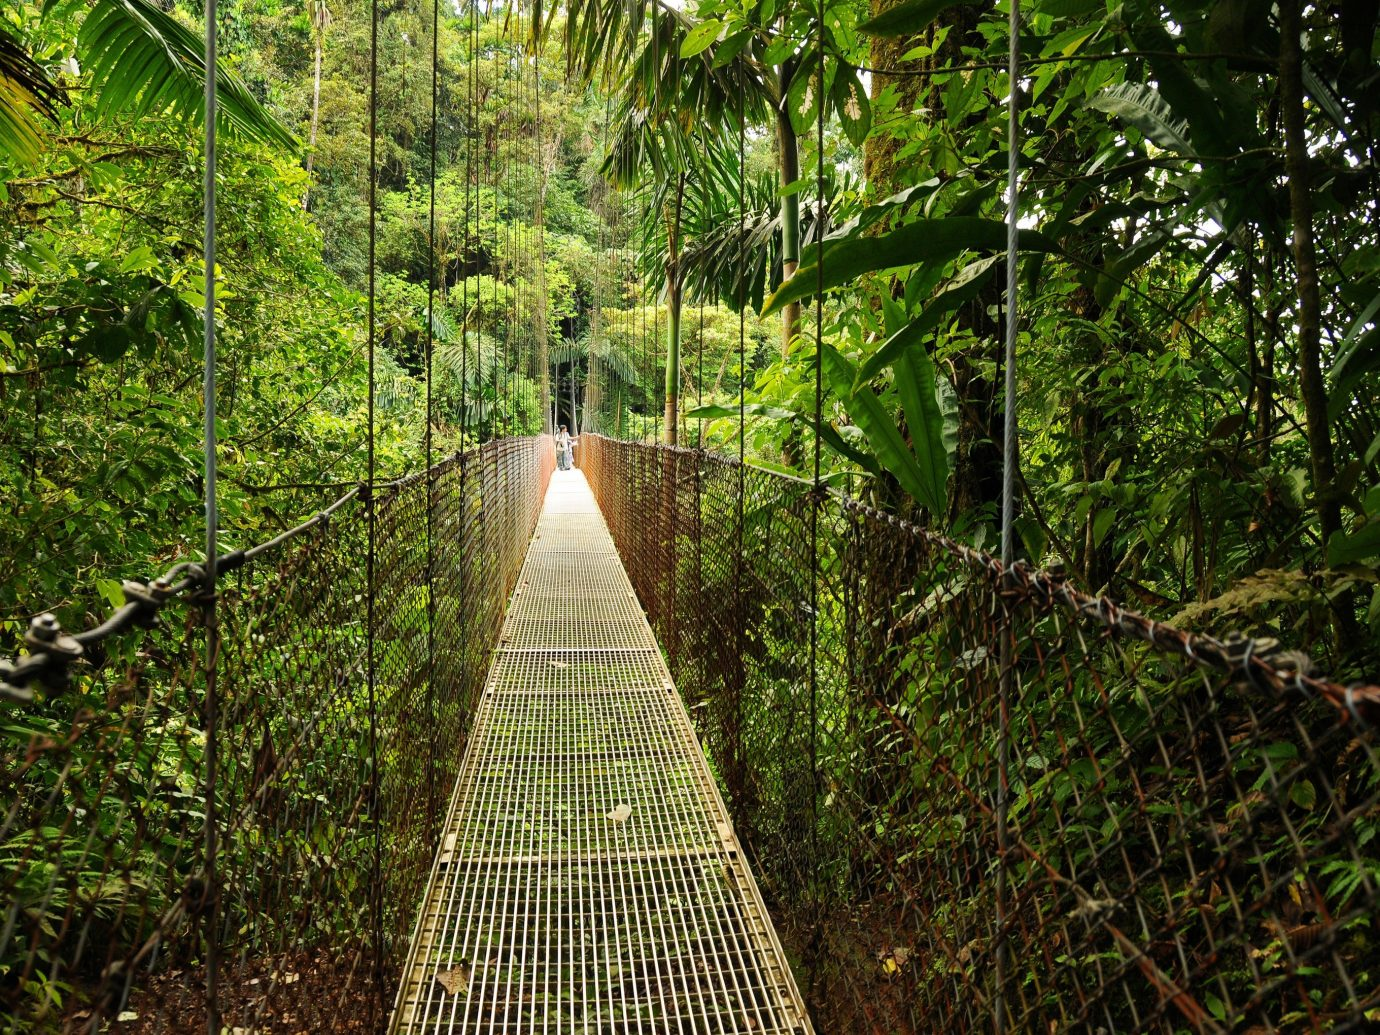 Trip Ideas tree bridge building habitat outdoor Nature vegetation natural environment green rainforest Forest botany Jungle woodland sunlight leaf Garden canopy walkway botanical garden plant wood wooded